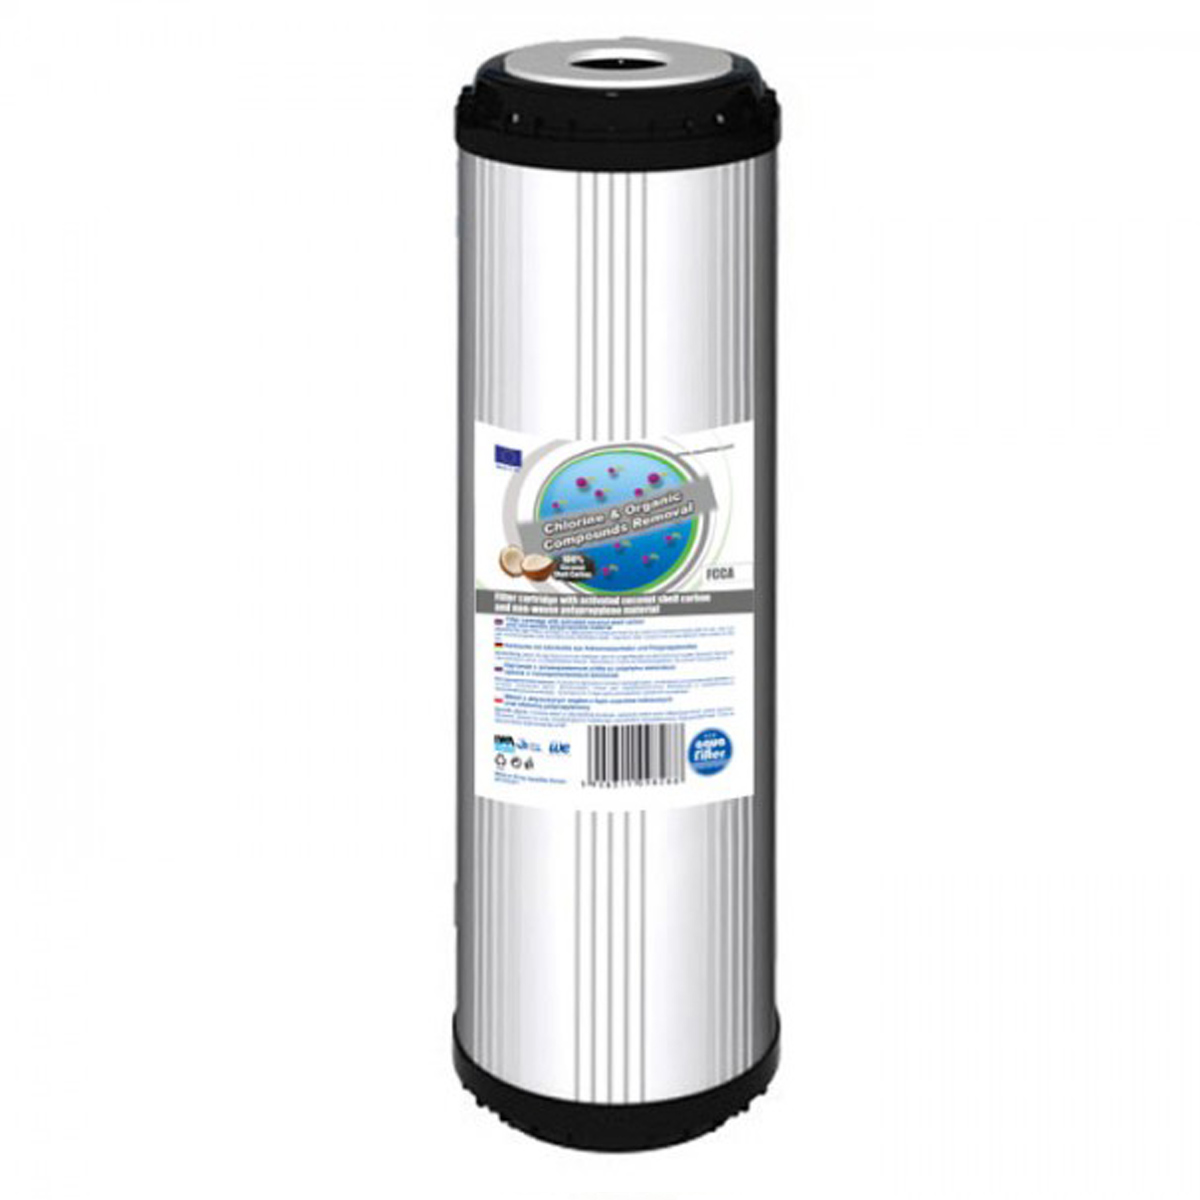 FCCA Granular Activated Carbon Filter 10""